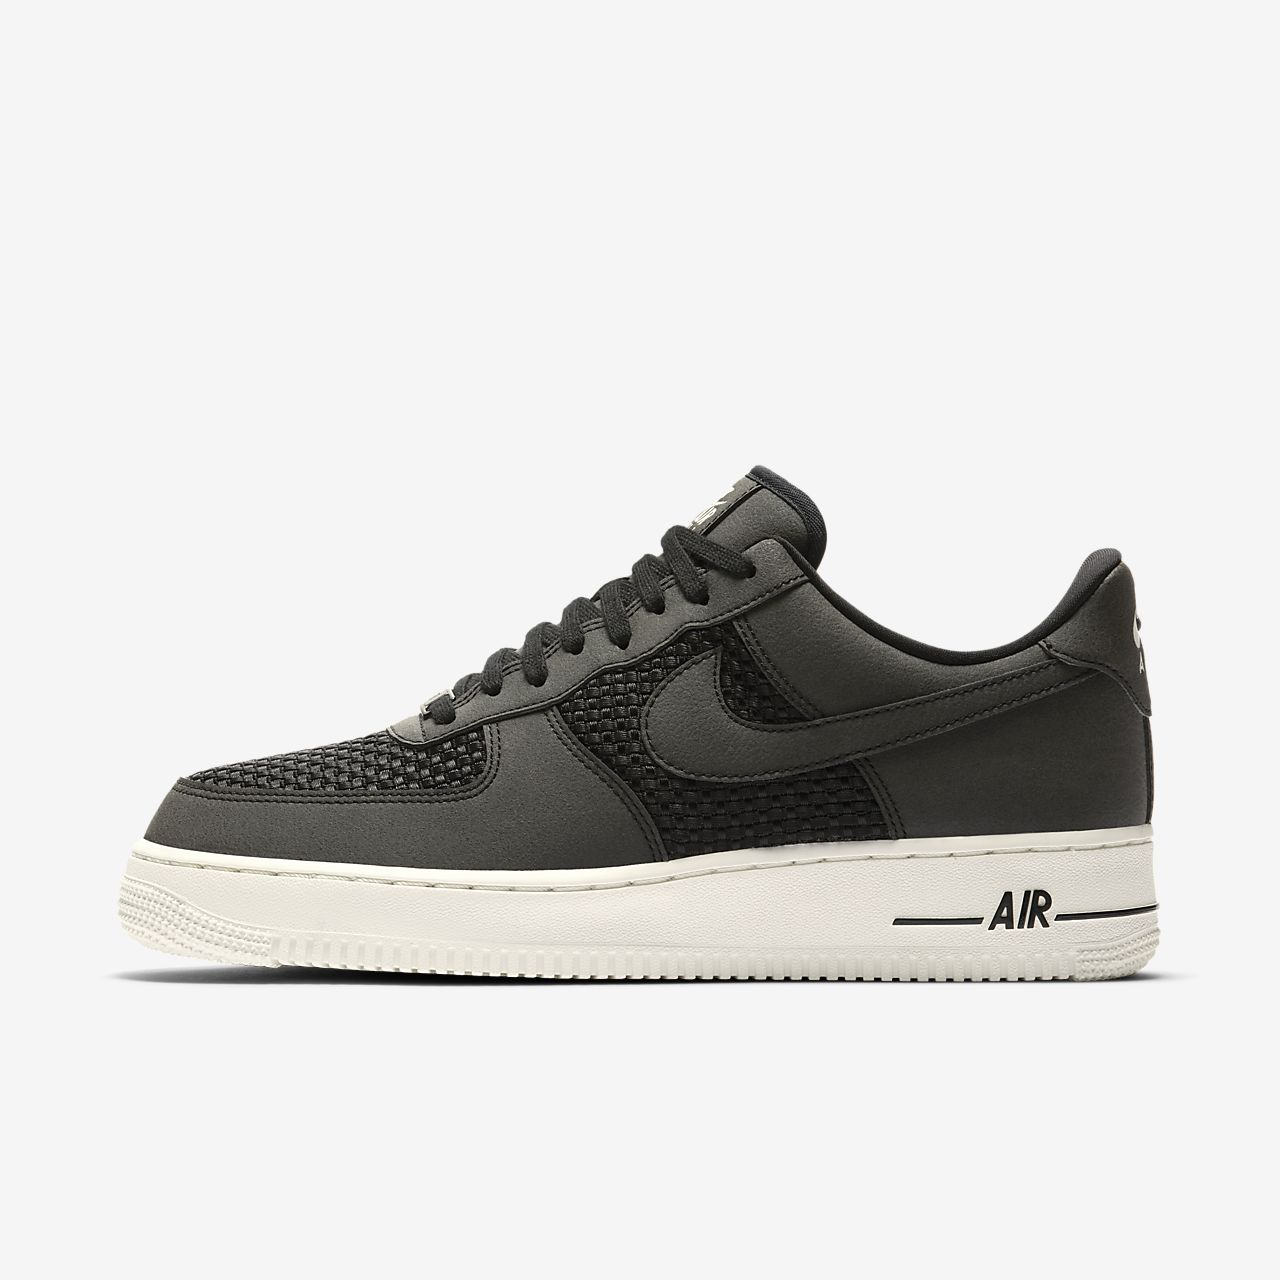 ad4744cd68d Nike Air Force 1 Low Men s Shoe. Nike.com AU